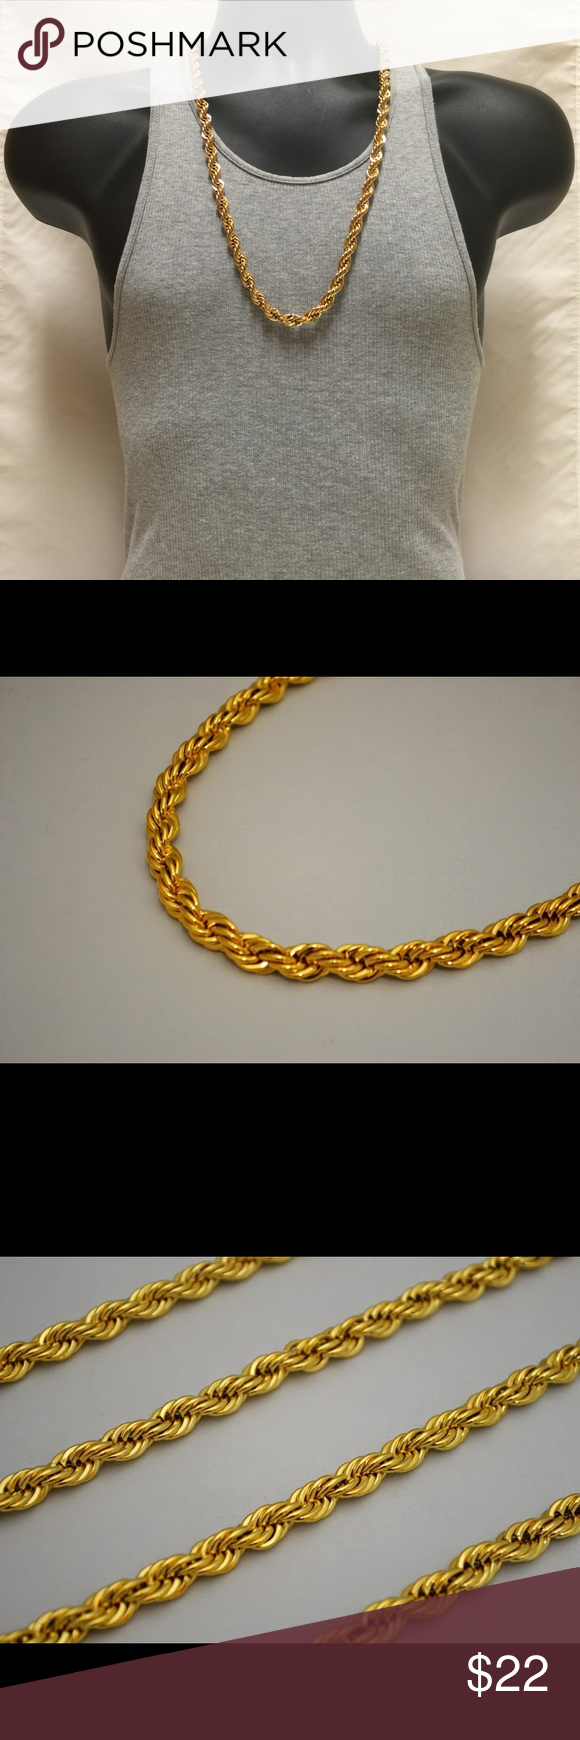 10mm 24k Gold Overlay French Rope Chain Necklace Gold Necklace Designs Necklace Designs Chain